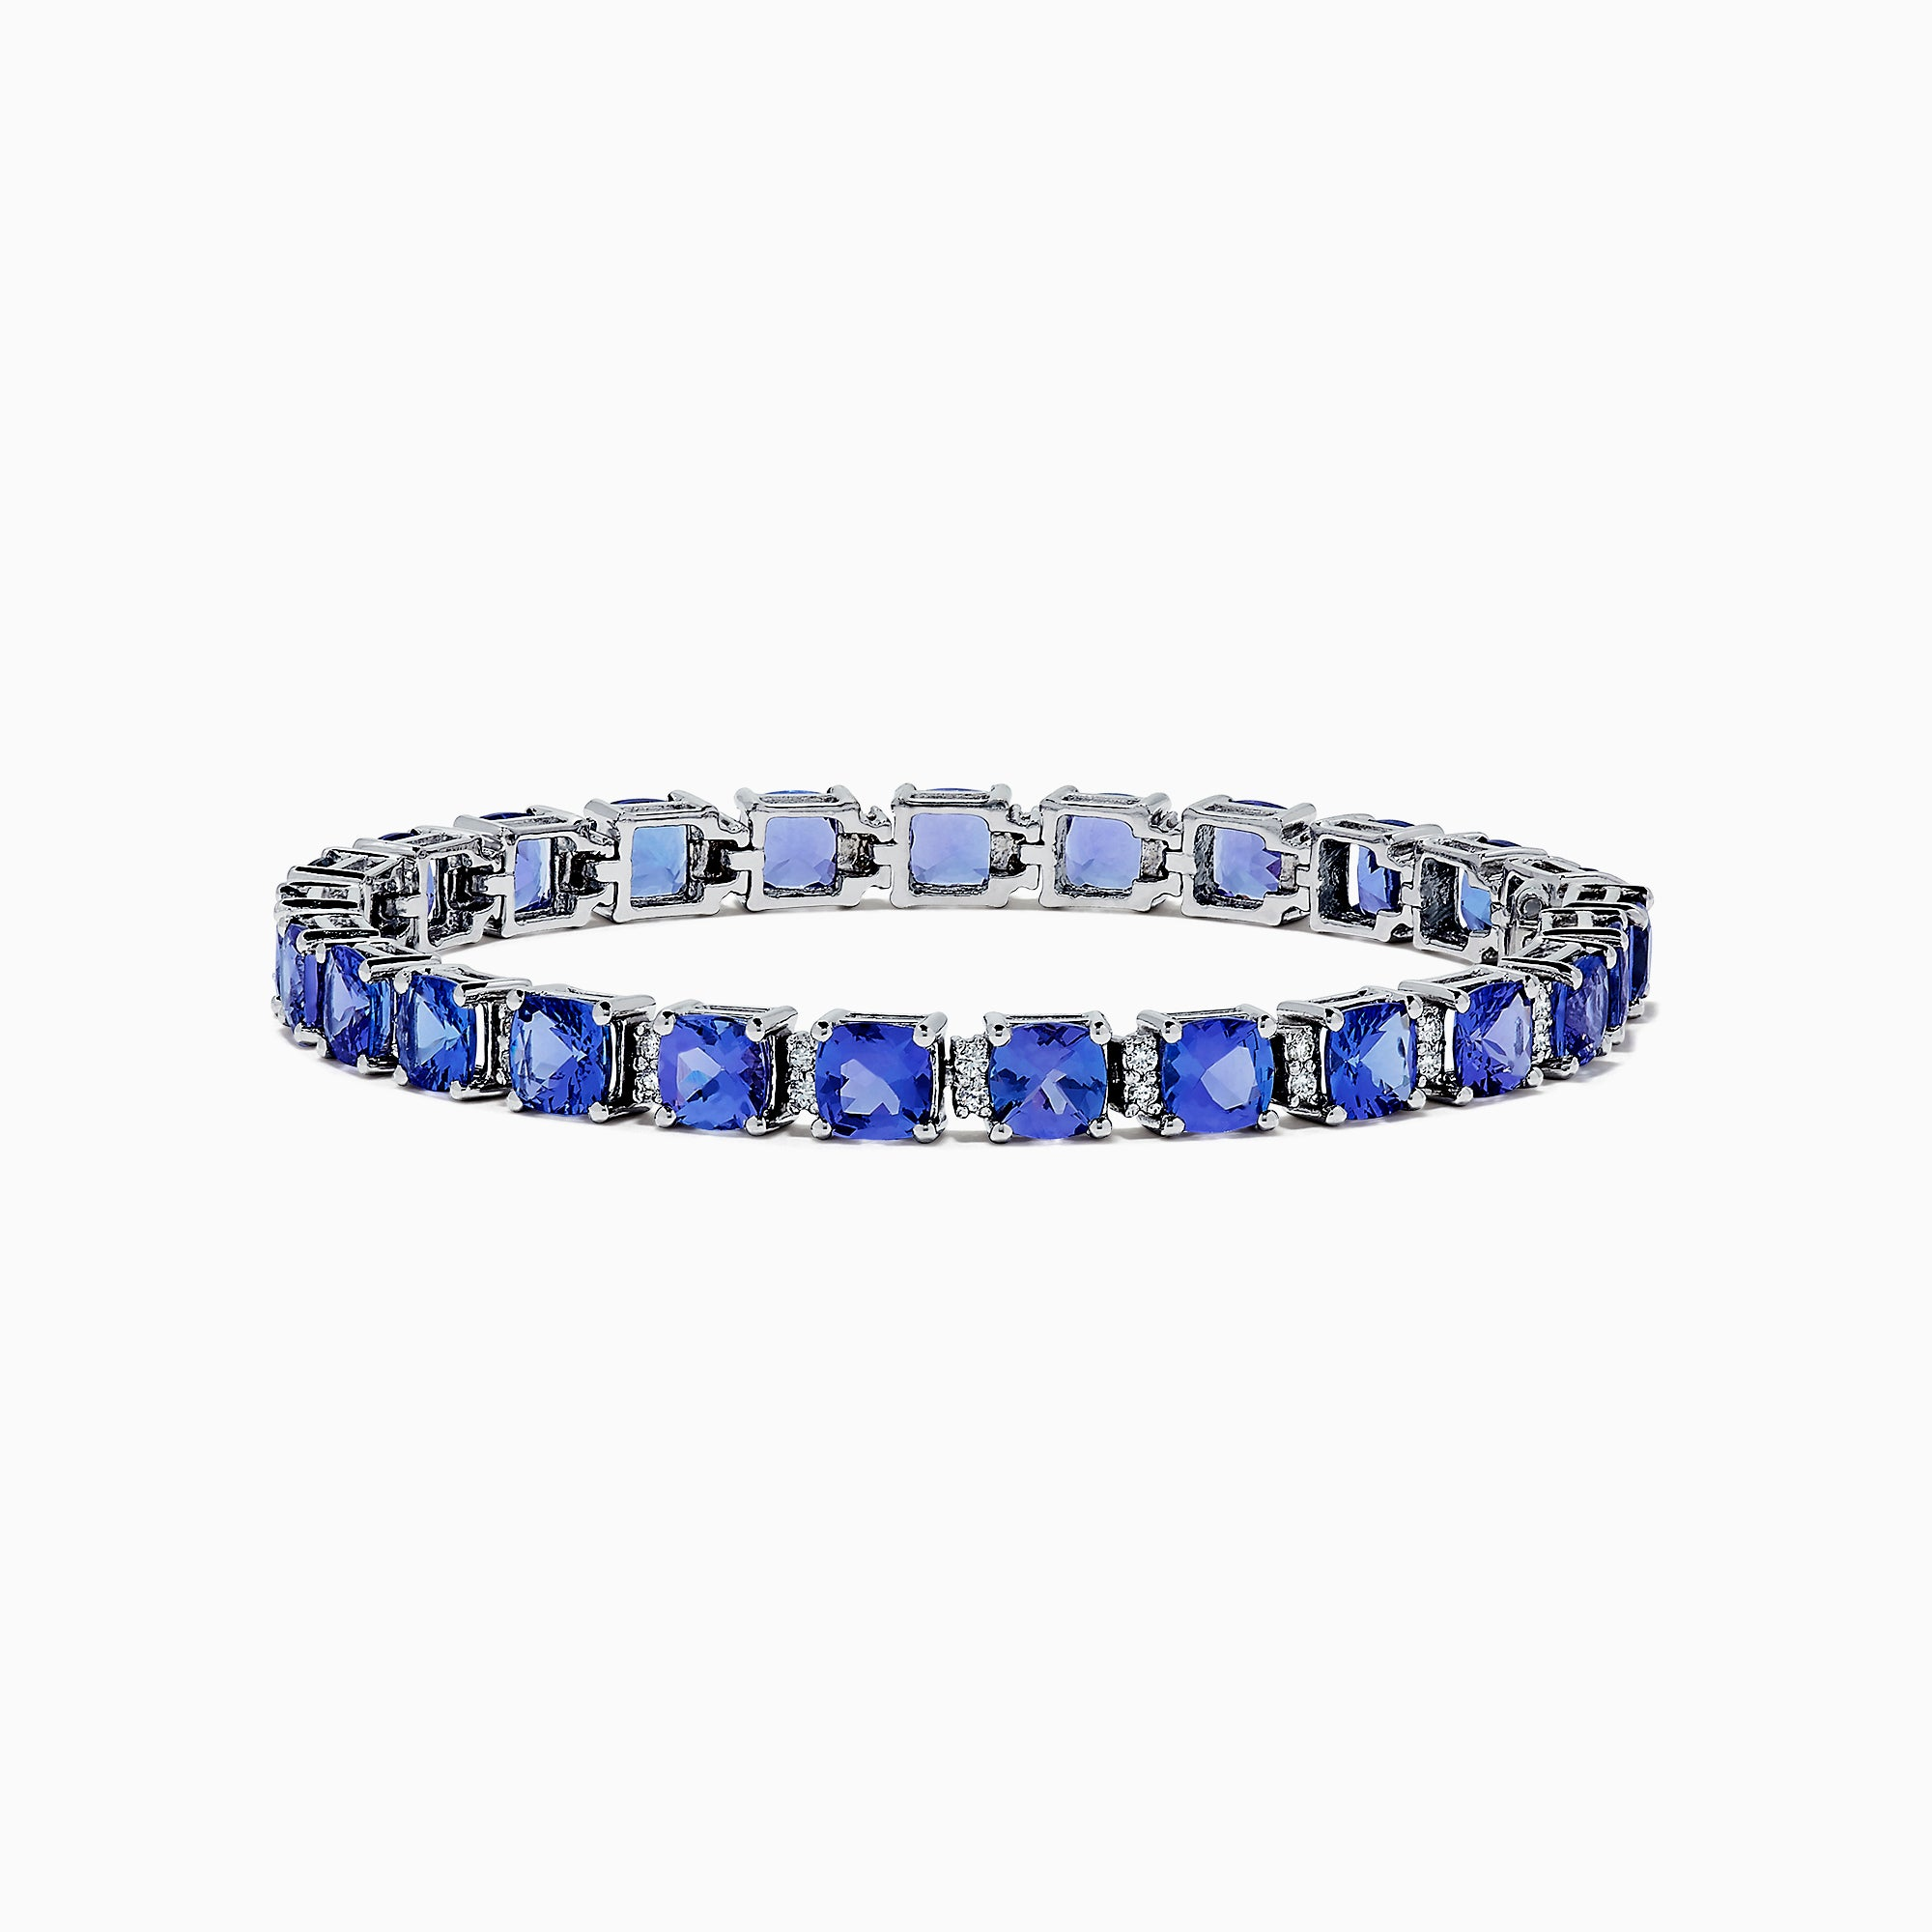 Effy 14K White Gold Tanzanite & Diamond Tennis Bracelet, 14.74 TCW